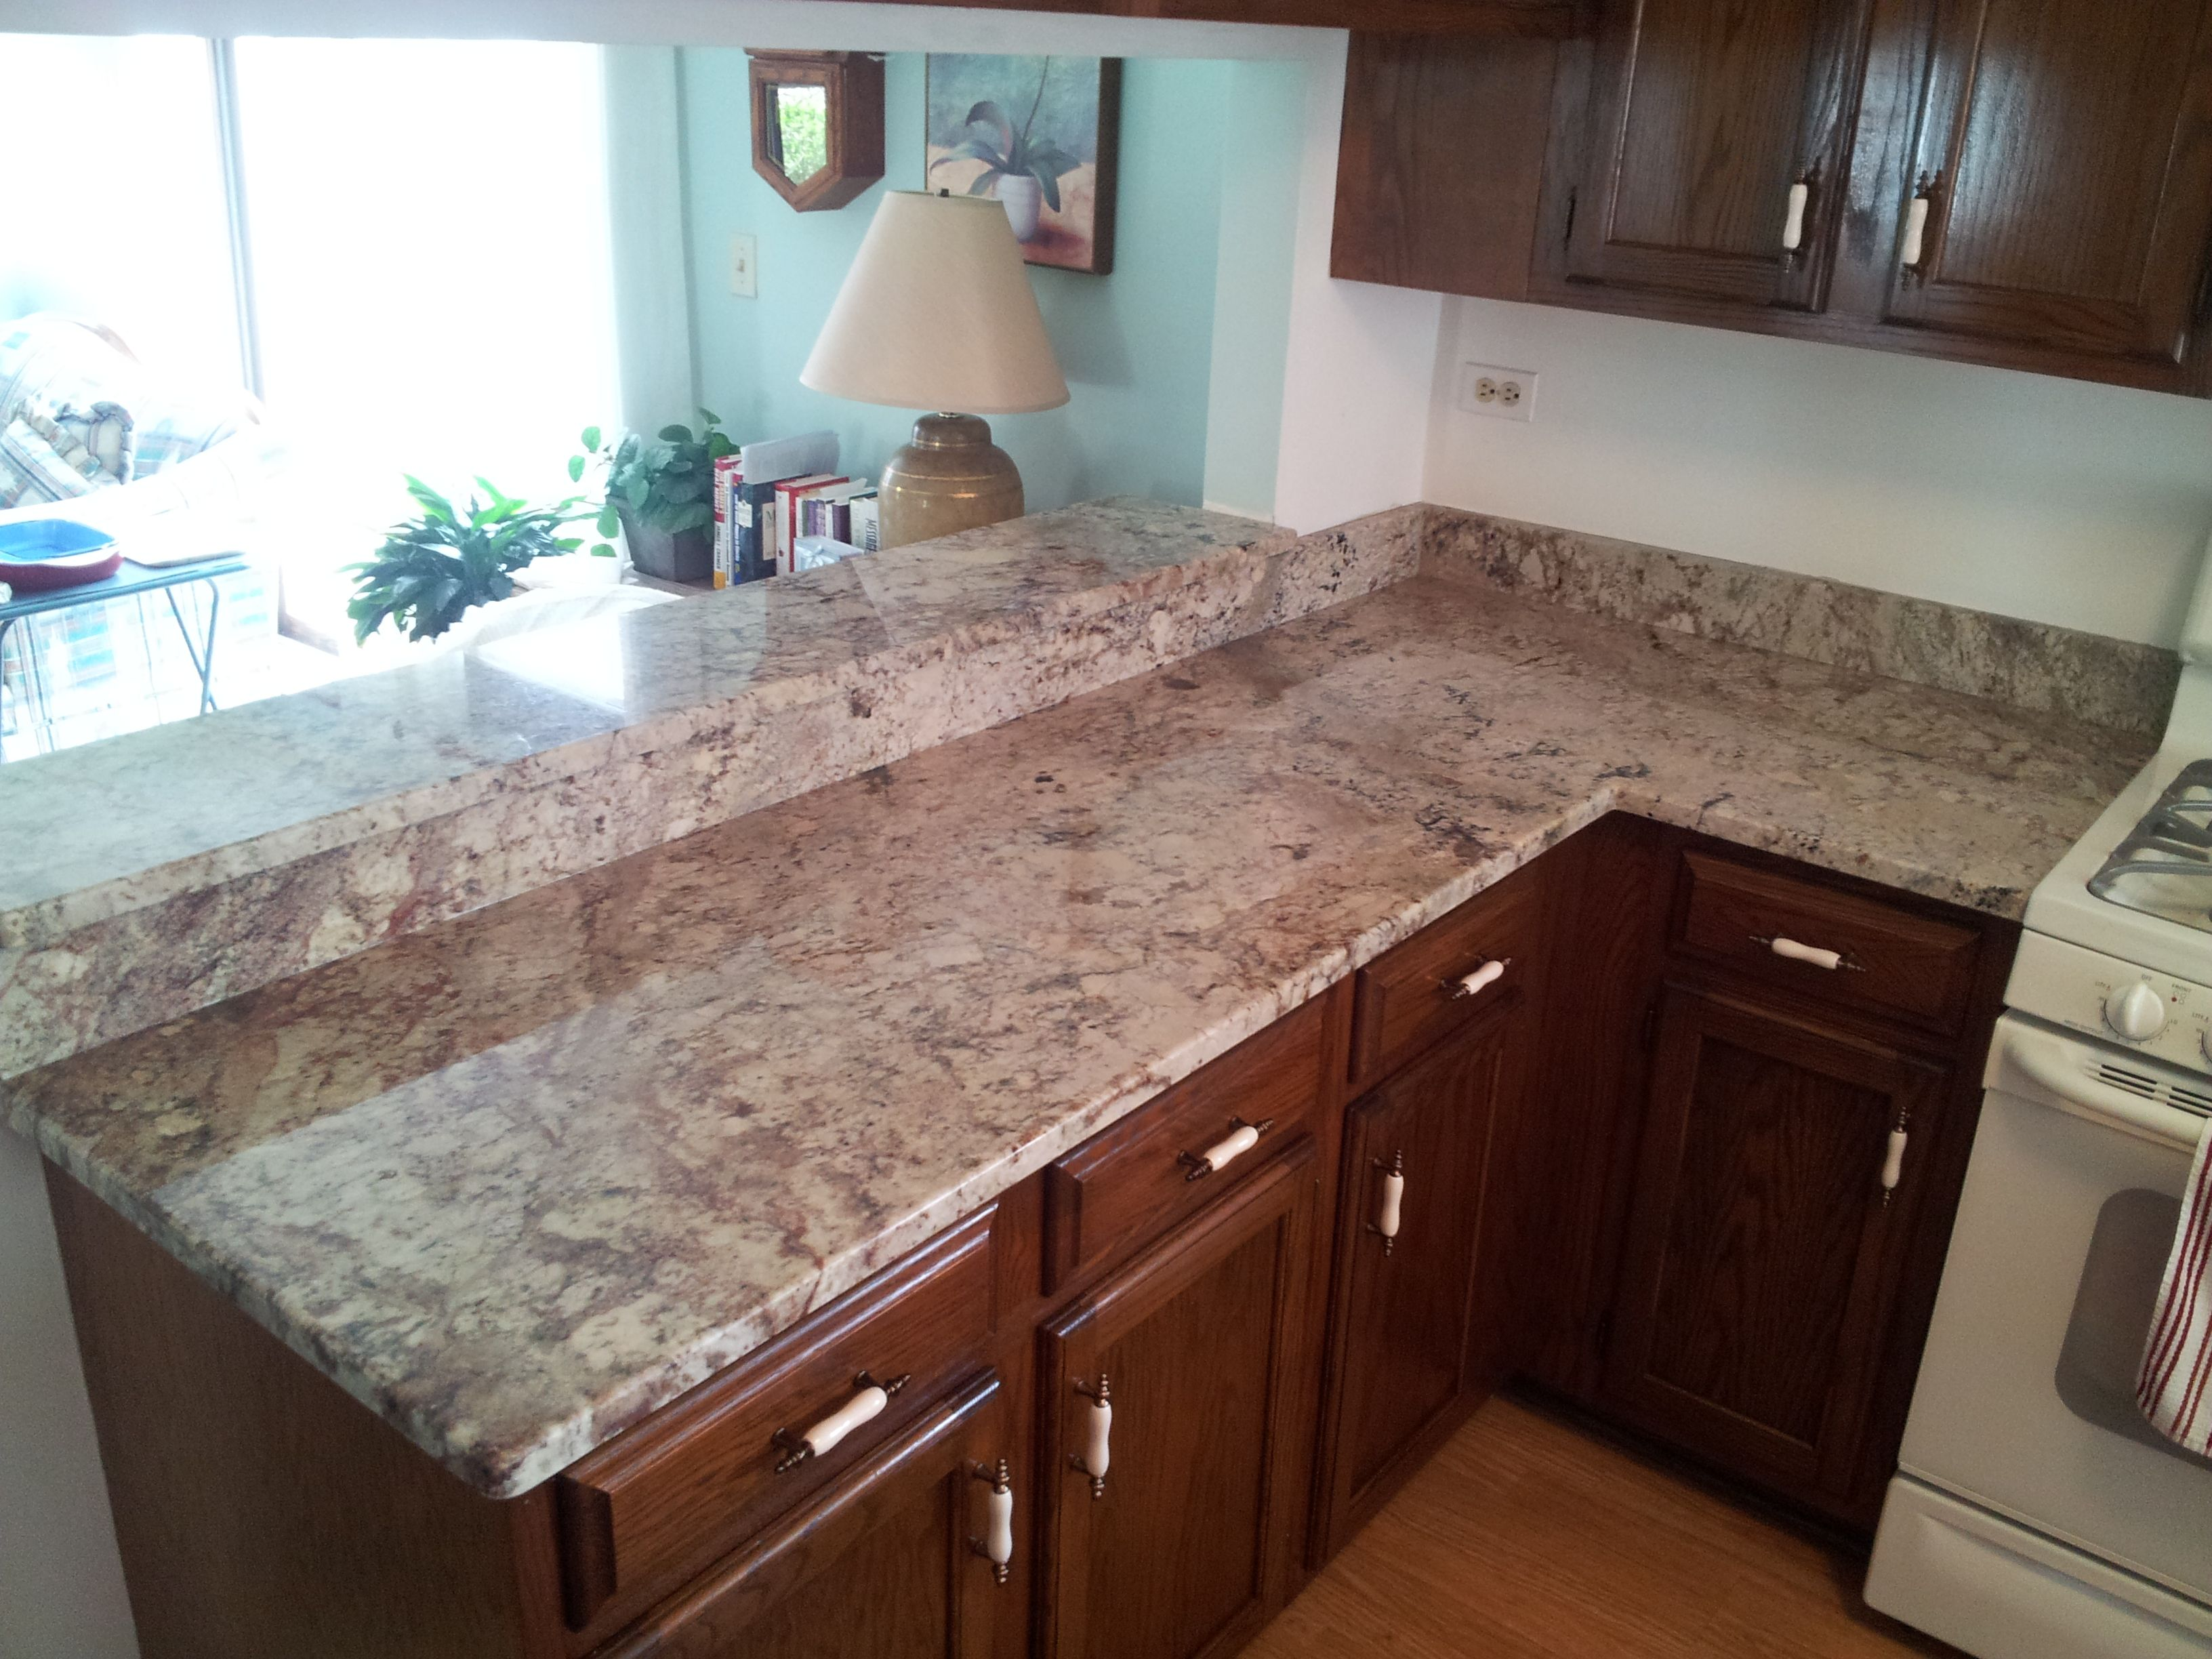 Art Granite Countertops Inc 1020 Lunt Ave Unit F Schaumburg Il 60193 Tel 847 923 1323 Sienna Bordeaux Granite Granite Countertops Colors Granite Tile